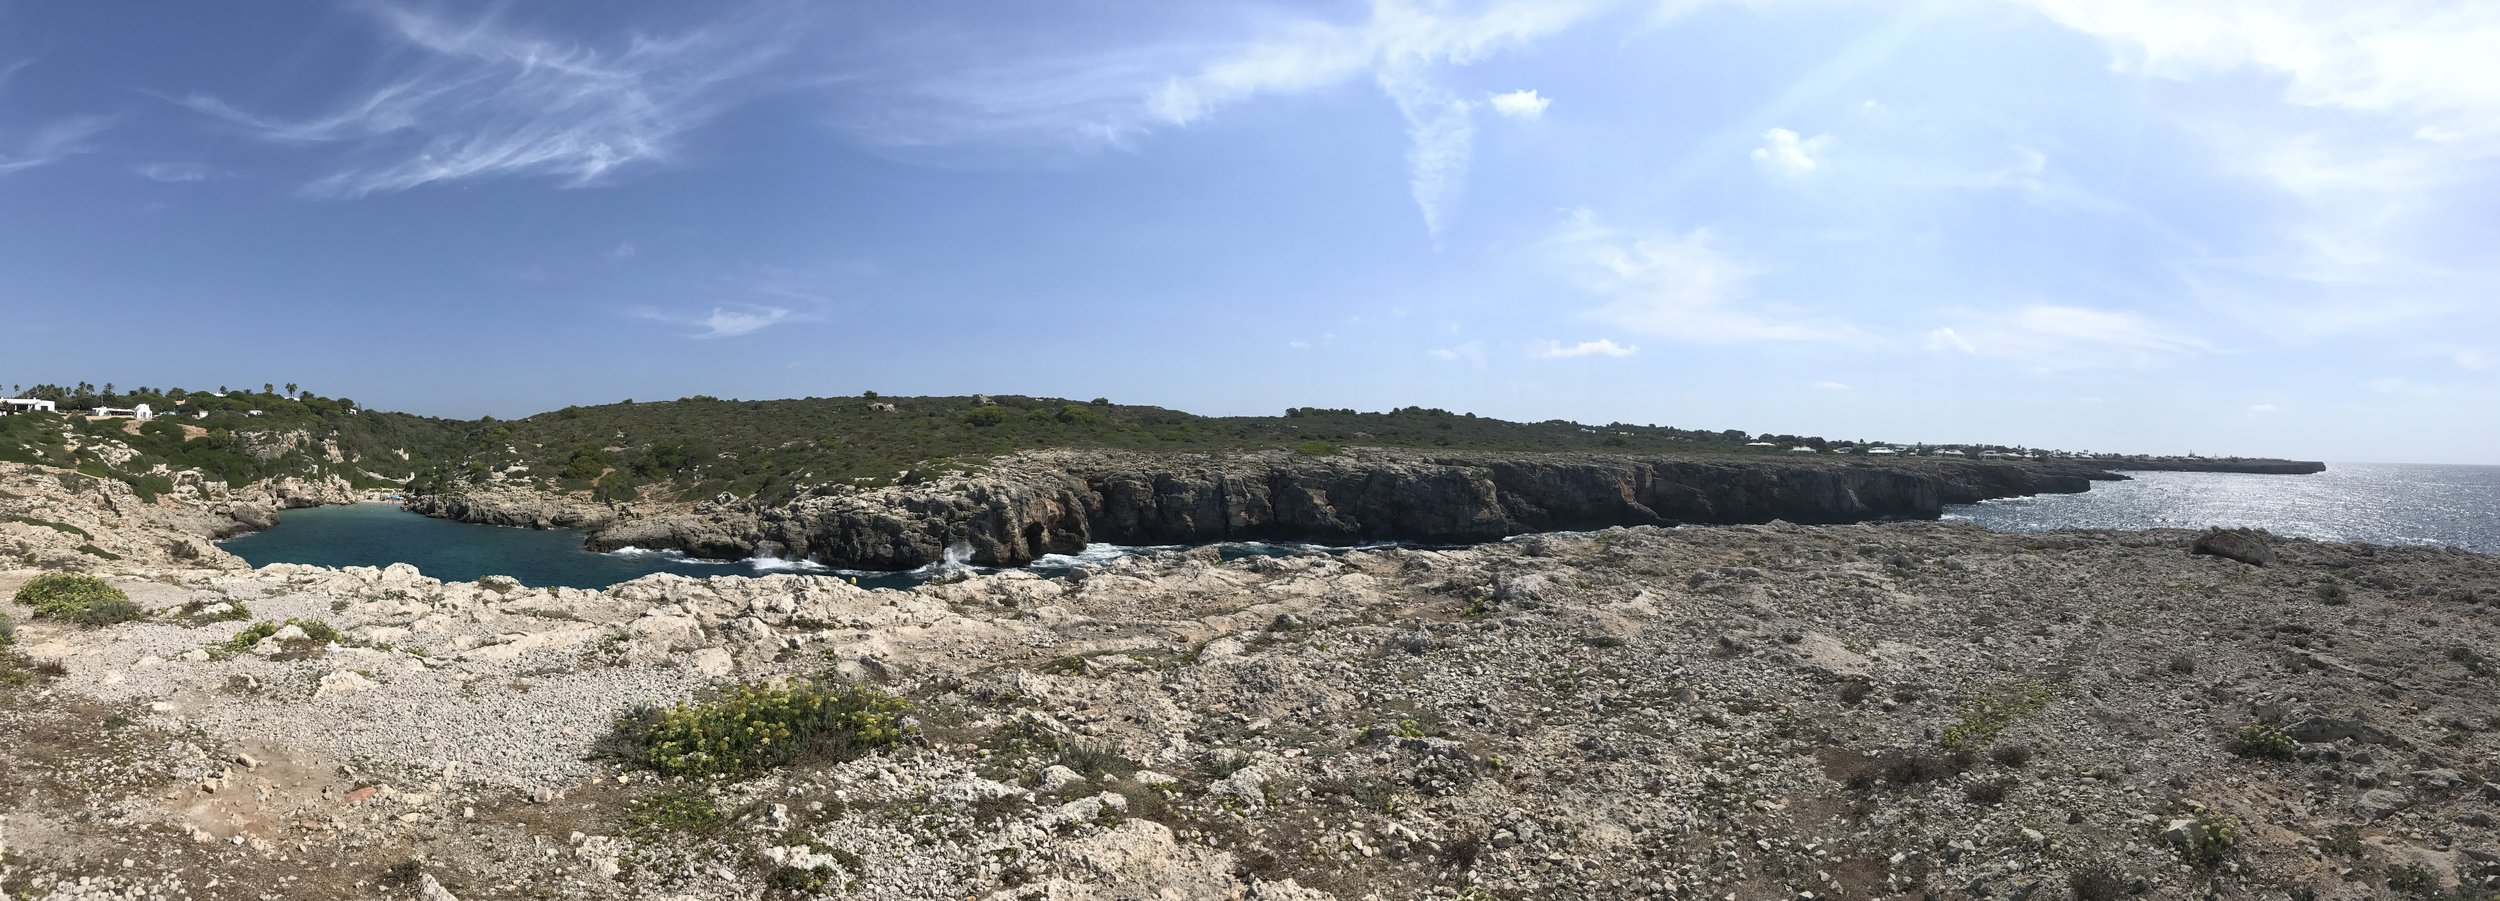 It's really similar to Point Dume in Malibu (CA). It's small, but the view and the sea are spectacular. Many people just pass by to take photos, but I highly suggest to spend few hours to relax in one of the less crowded beach of Menorca.